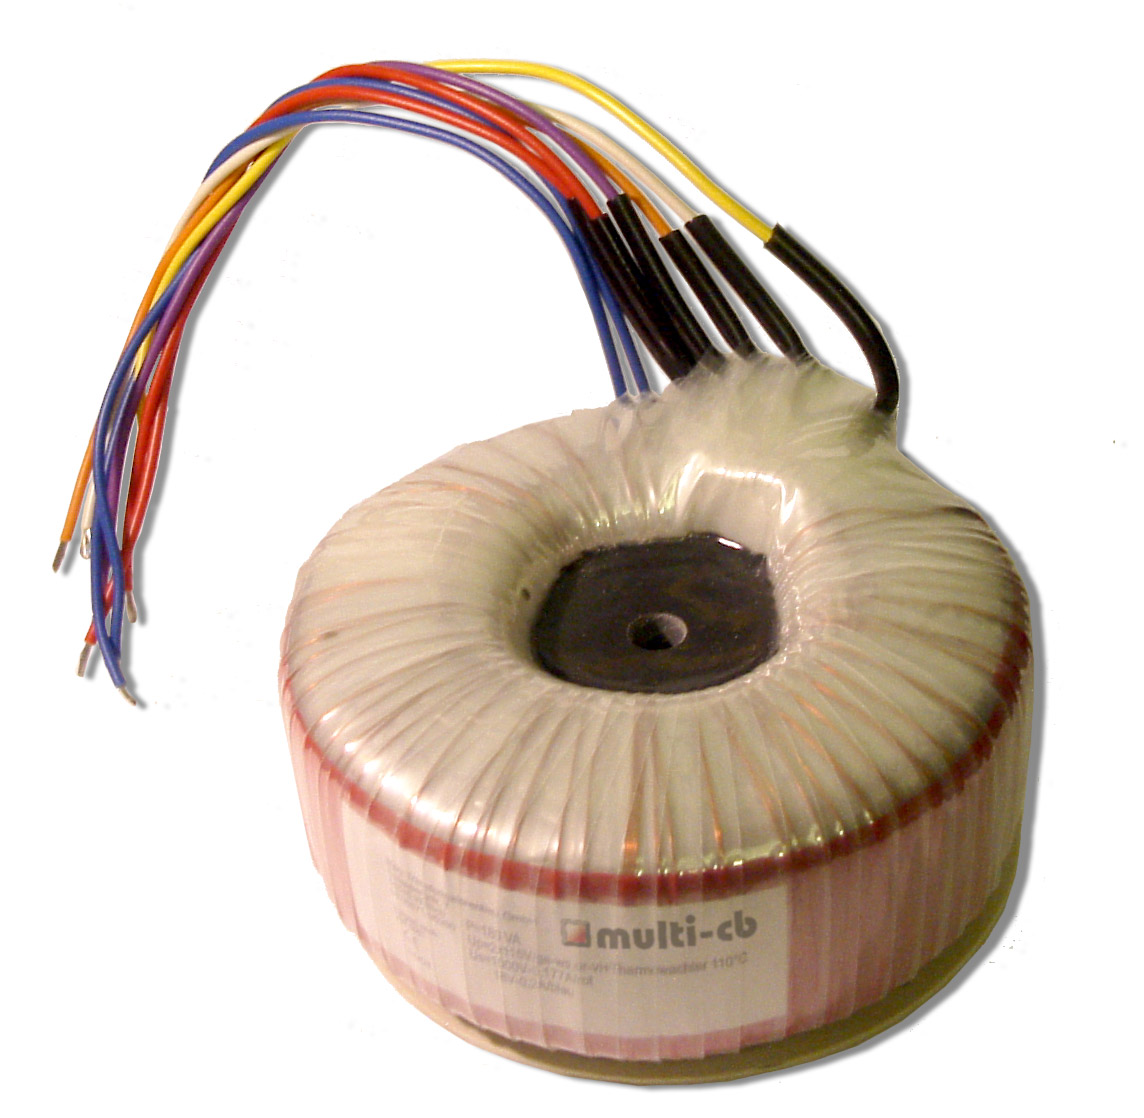 Centre potted toroidal transformer